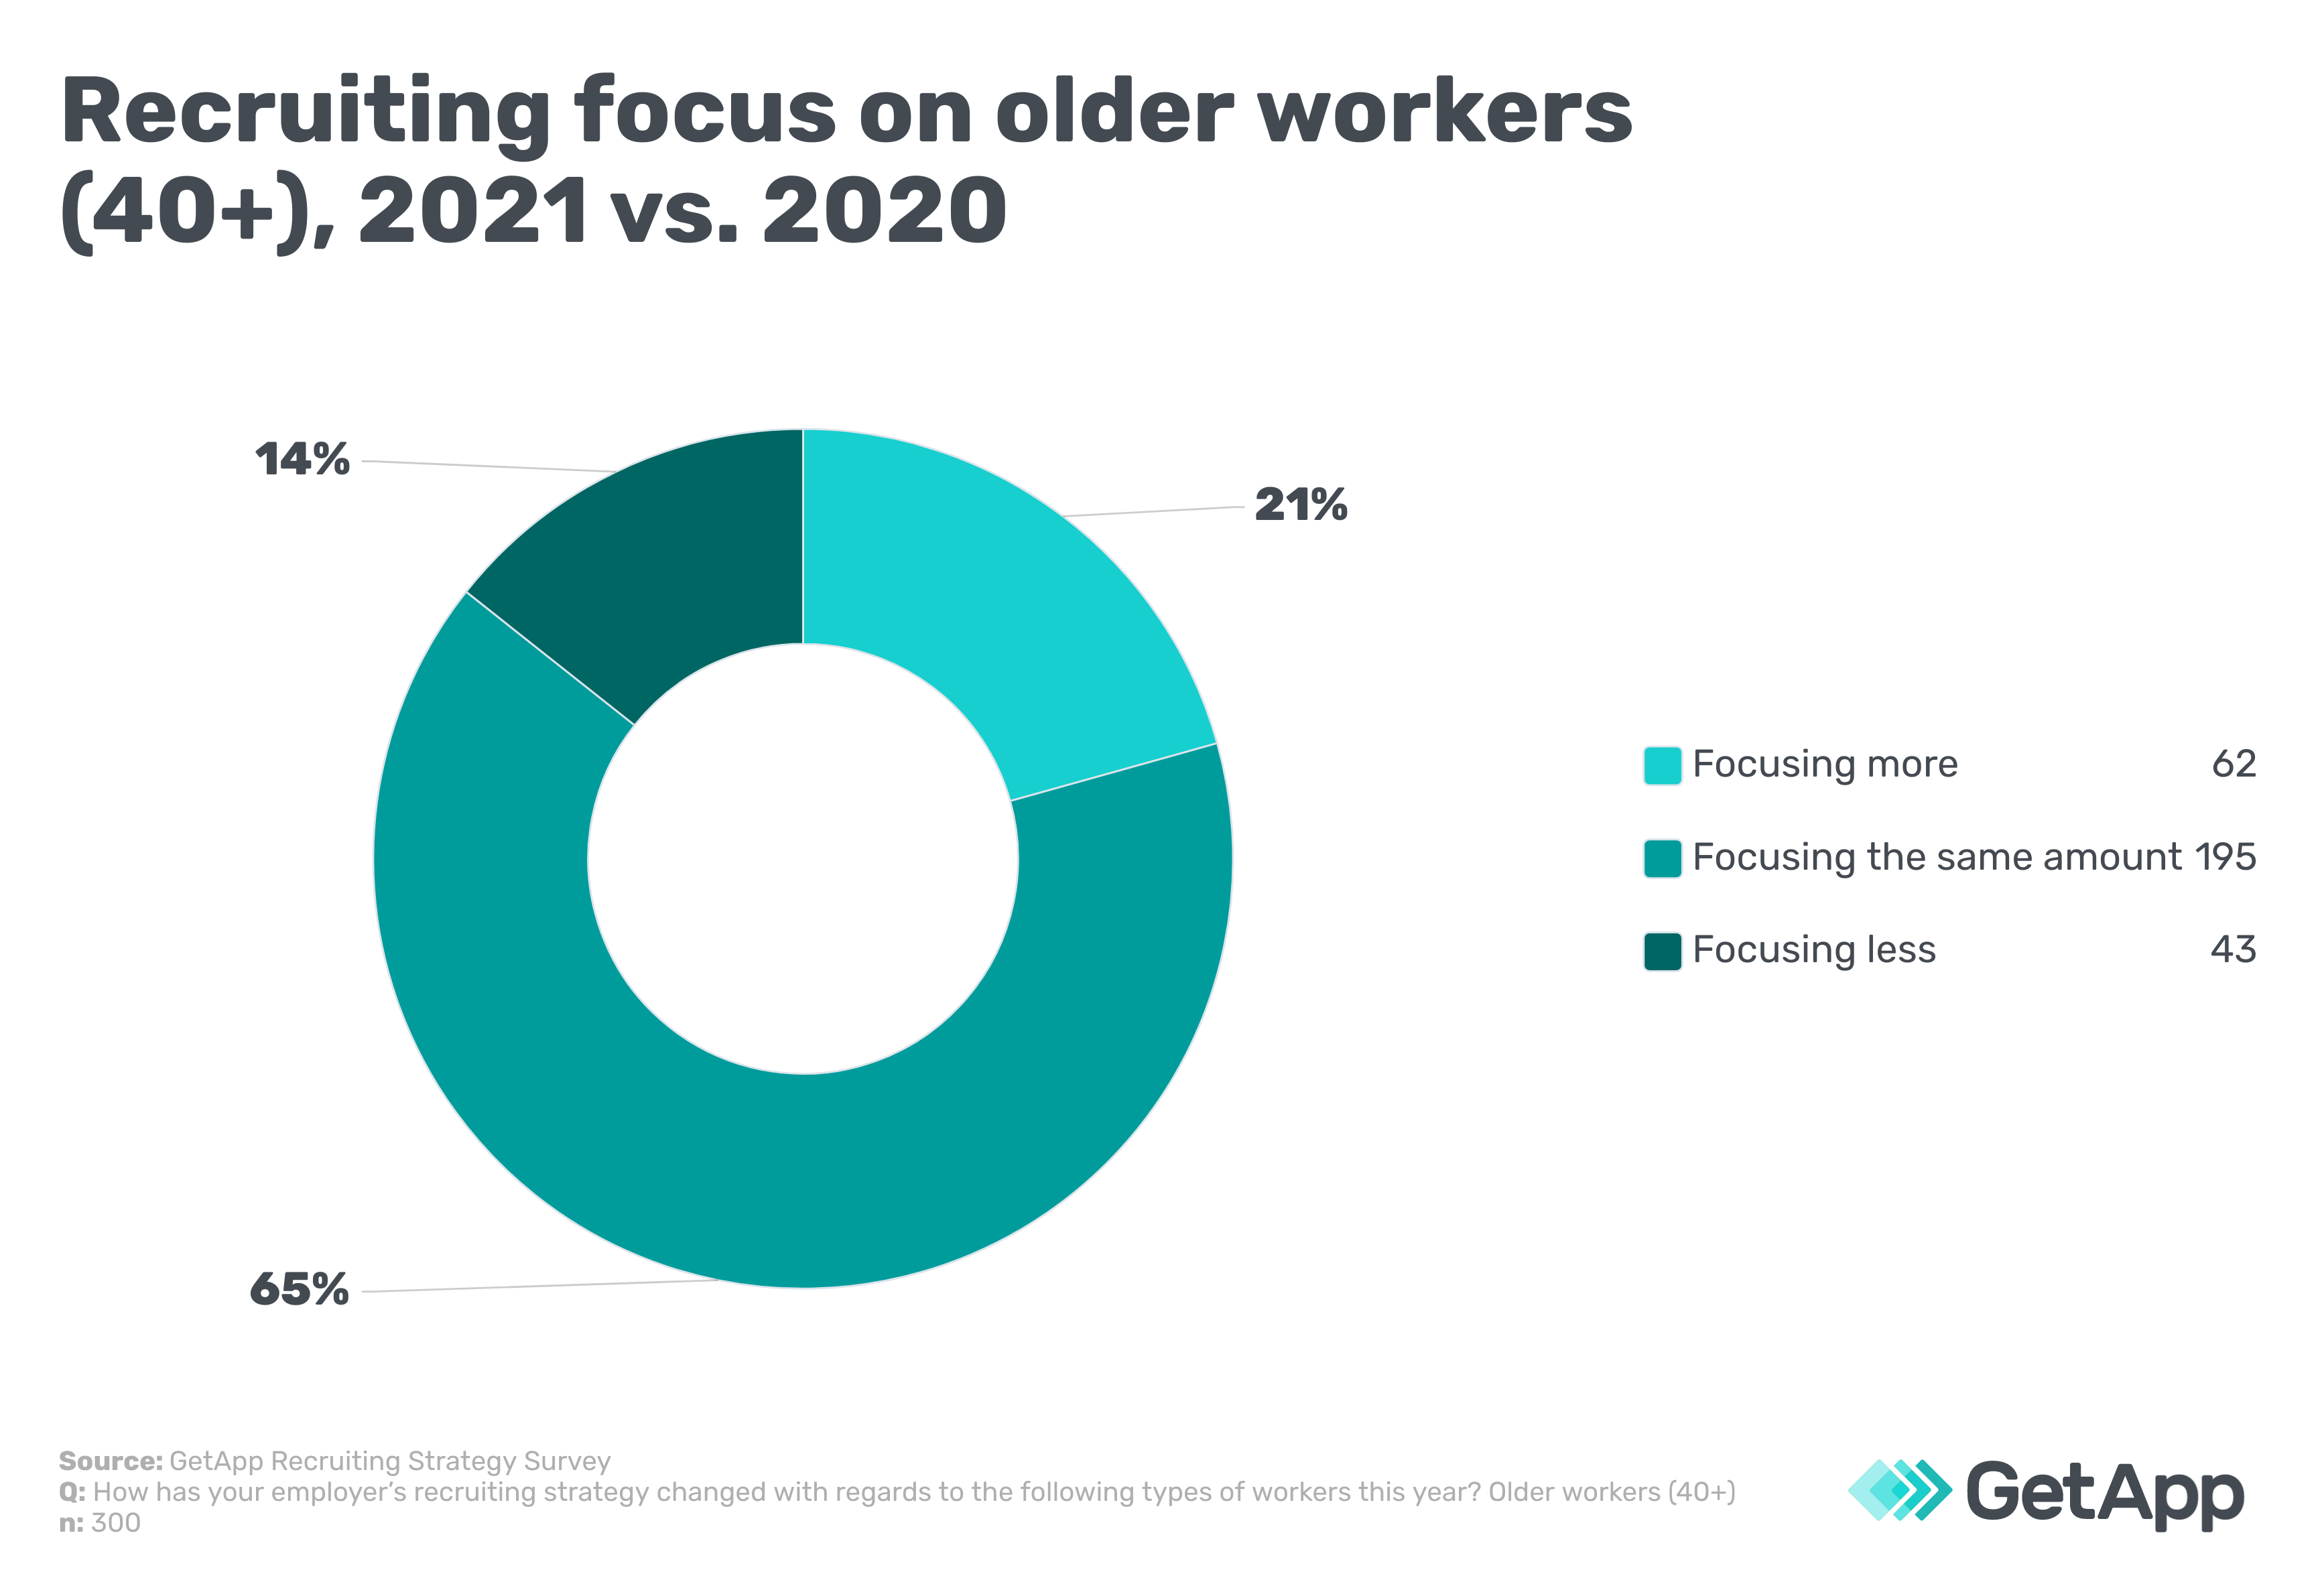 Recruiting focus on older workers (40+), 2021 vs 2020